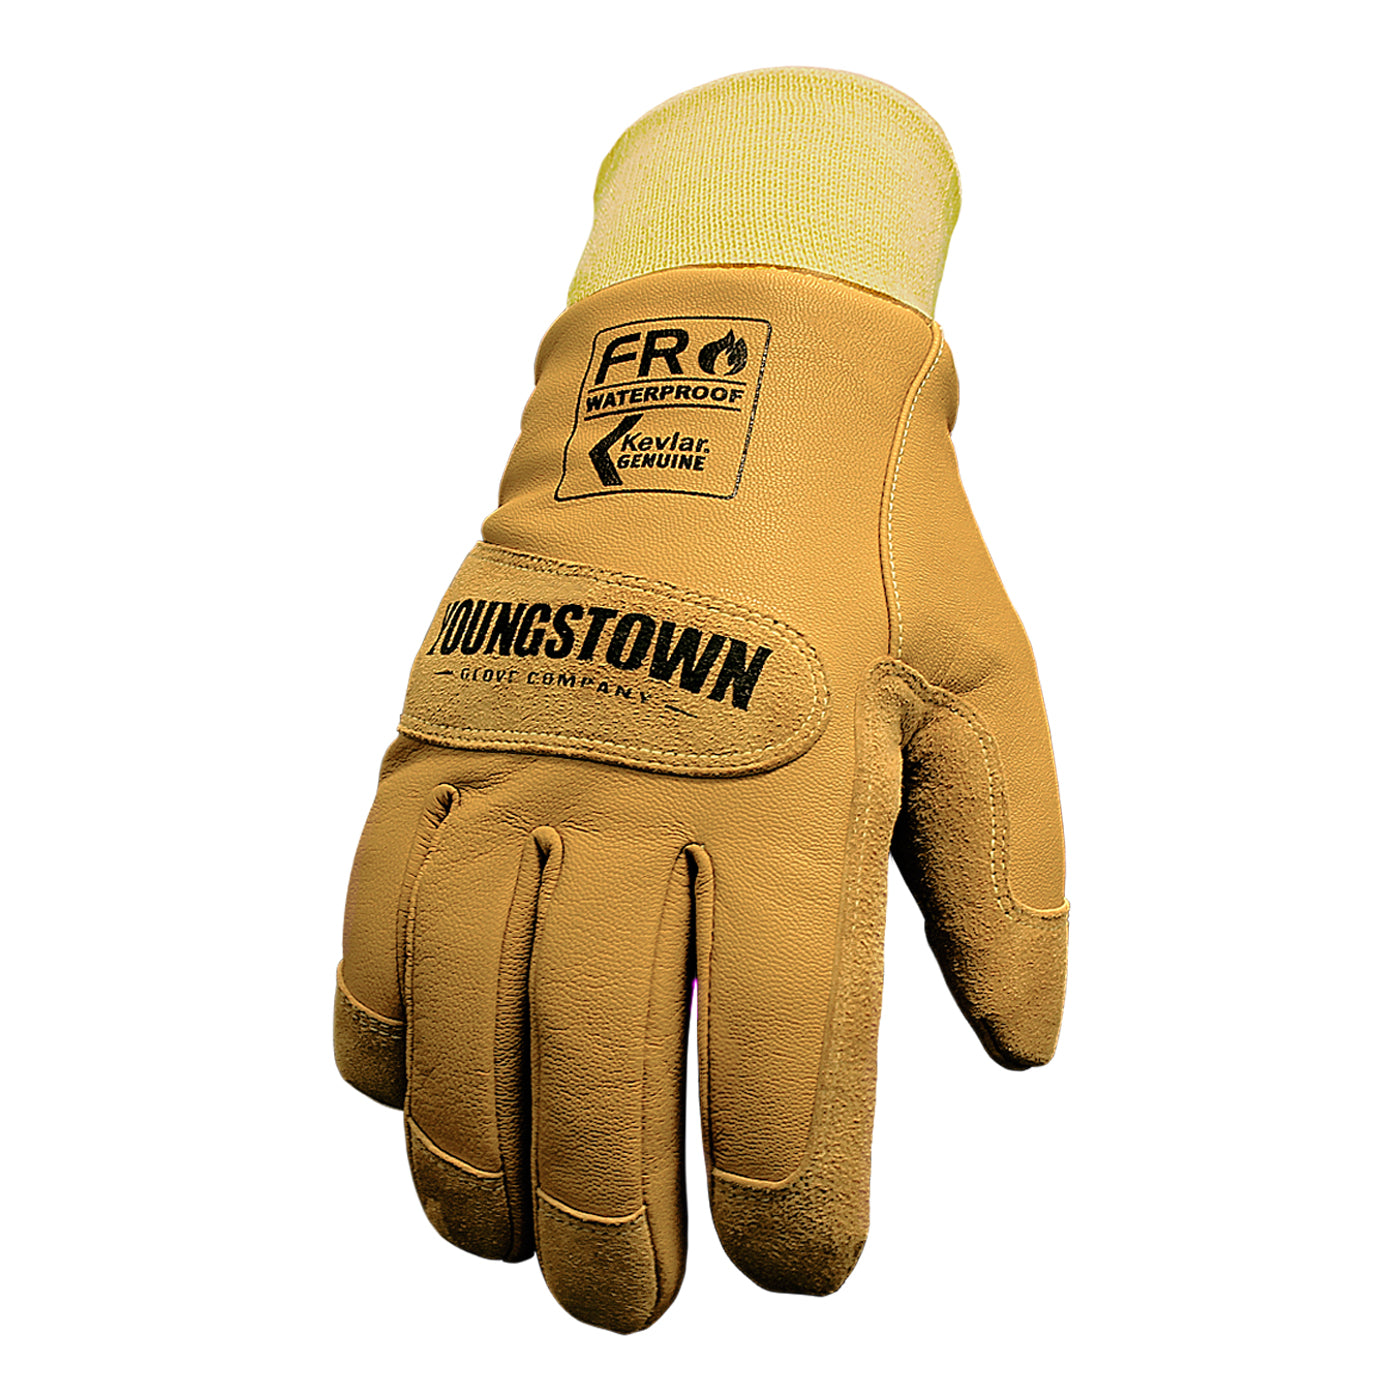 FR Waterproof Ground Glove